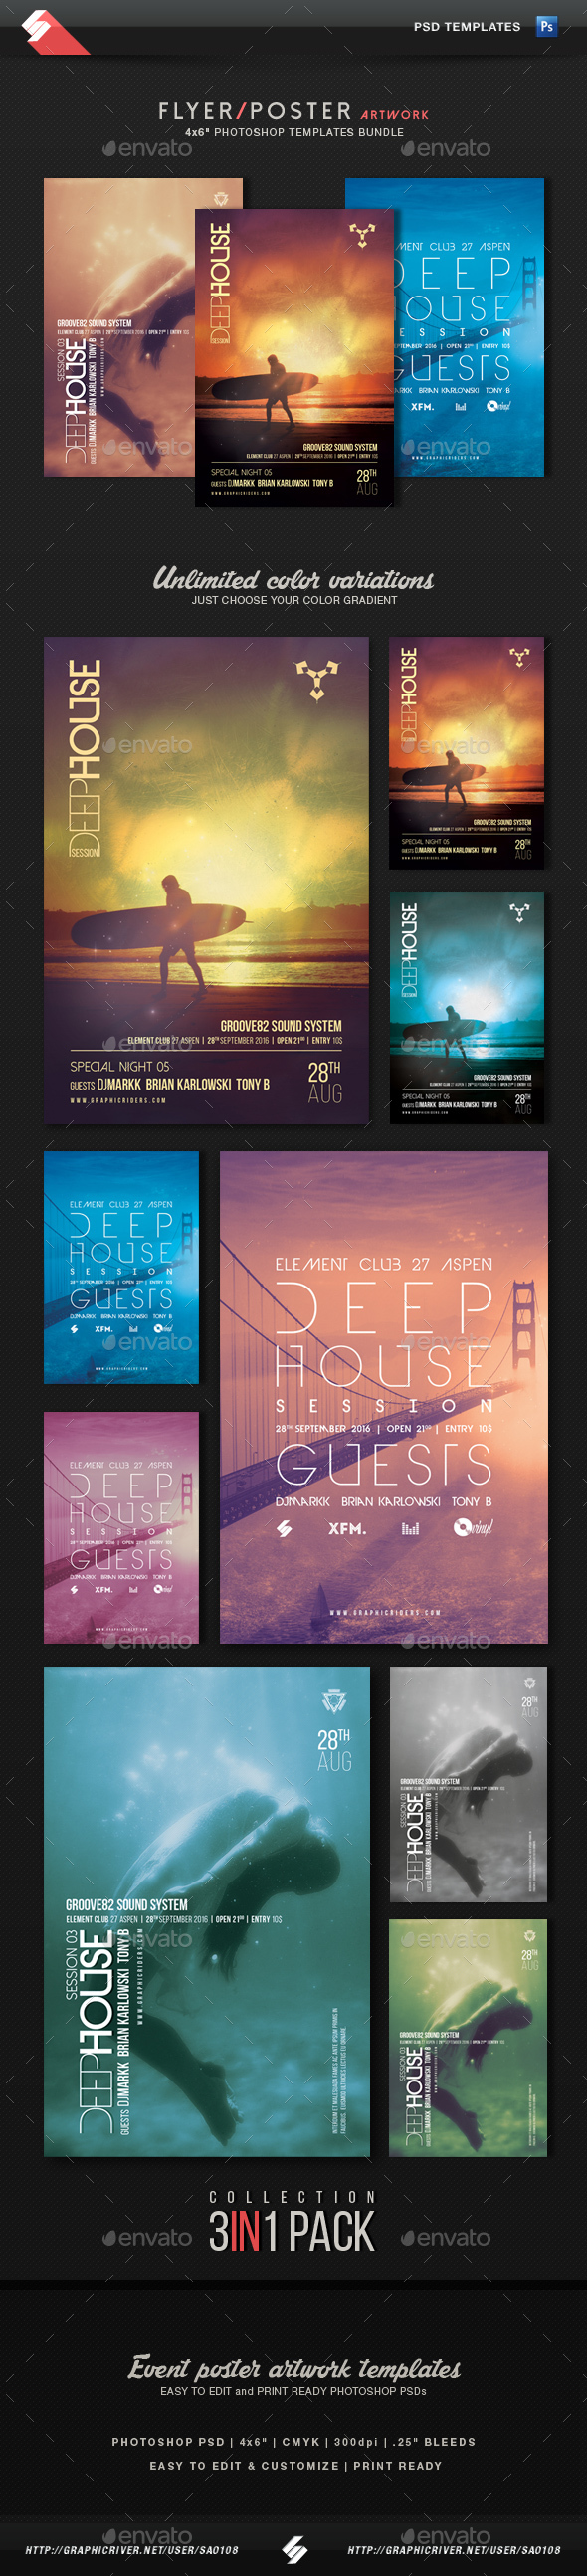 Deep House Collection 2 - Party Flyer Templates Bundle - Clubs & Parties Events